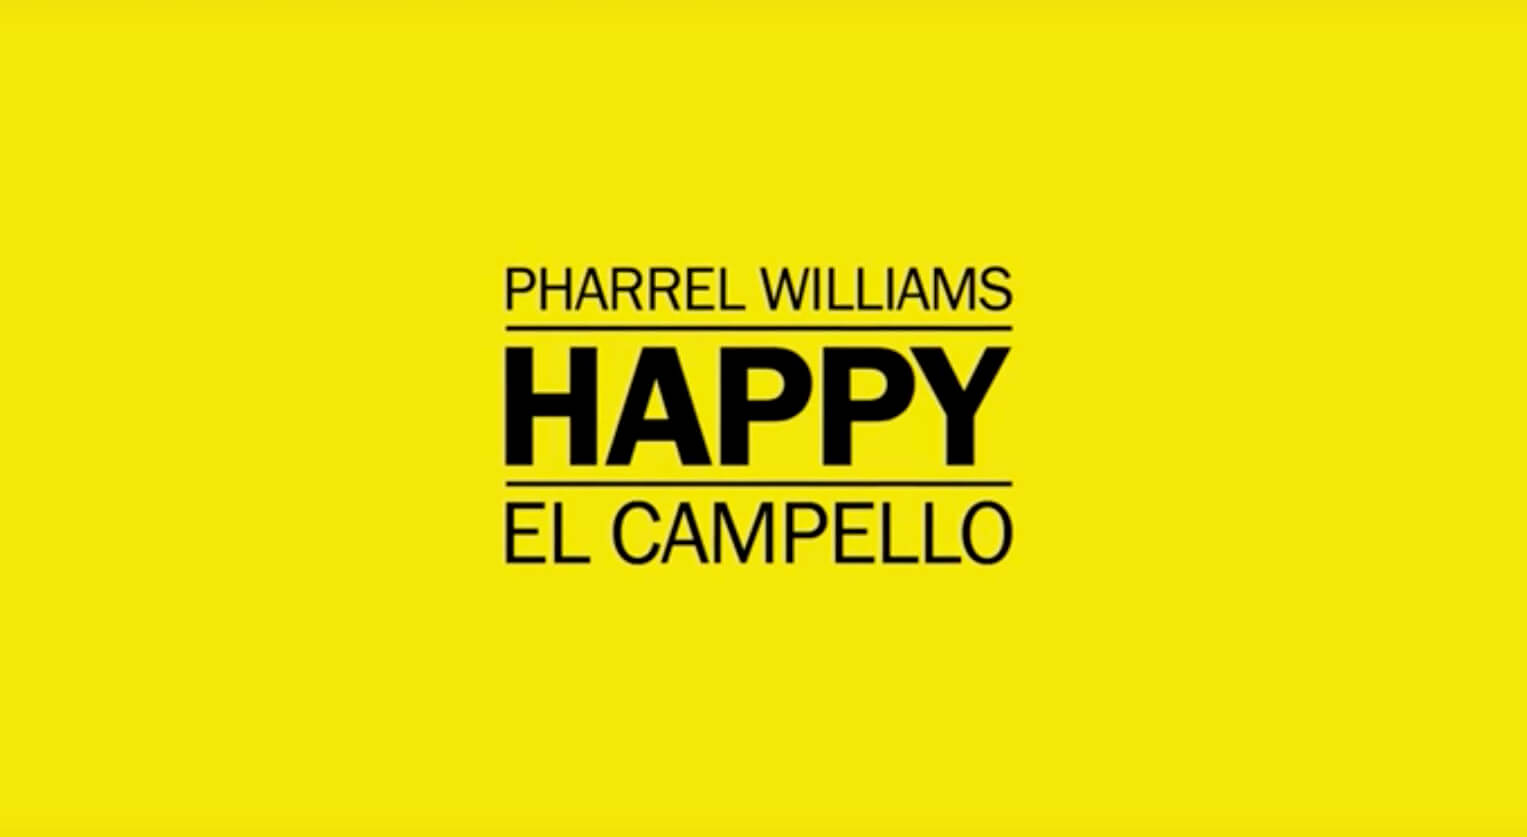 Happy (We are from El Campello) - Pharrell Williams